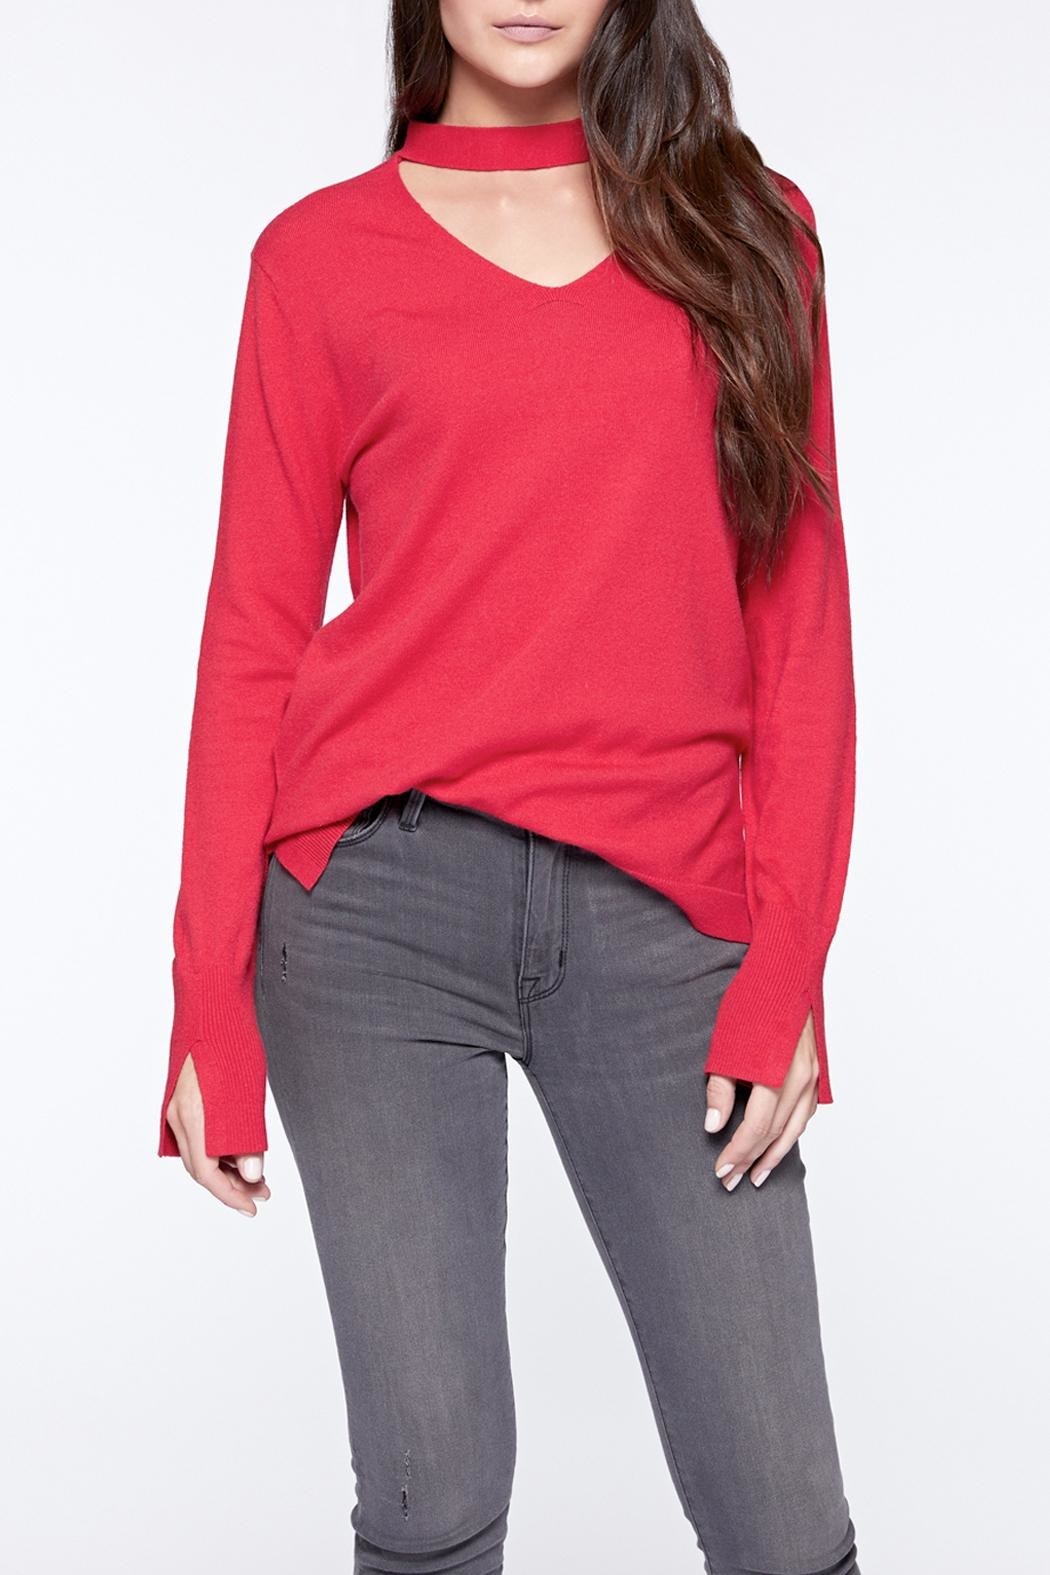 Sanctuary Choker Neck Sweater - Main Image